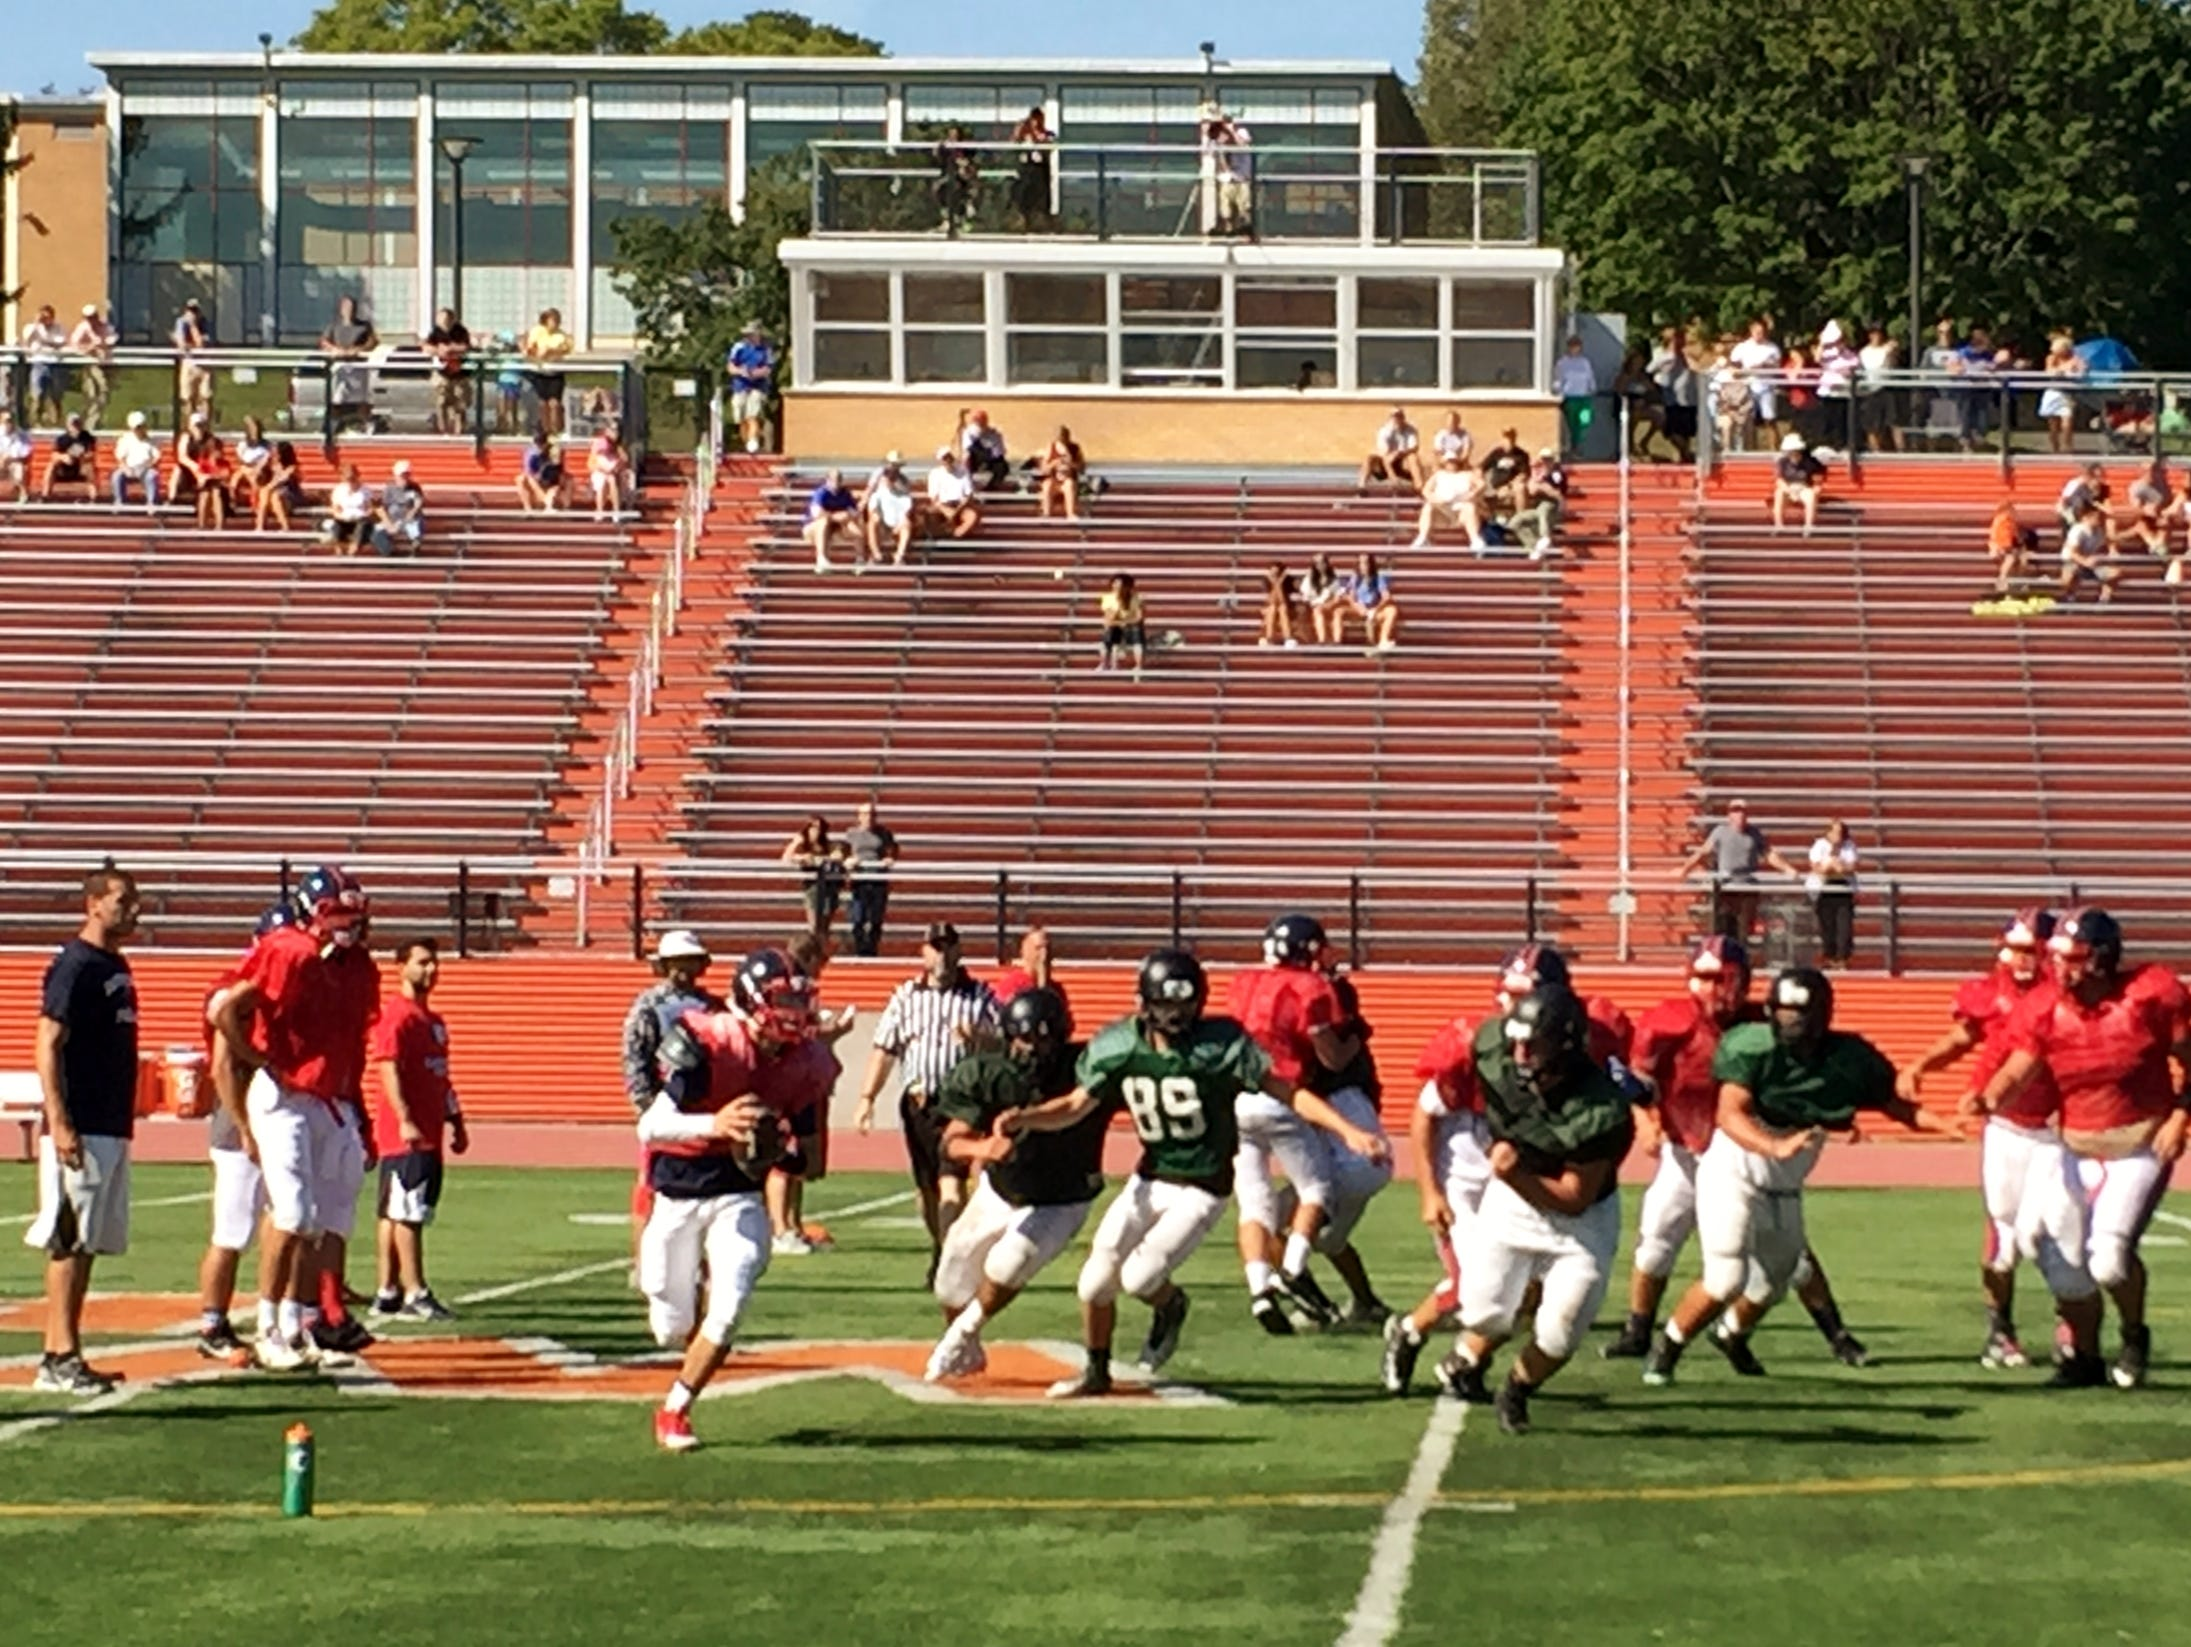 Eastchester shows off its newly-installed spread offense during a scrimmage against Yorktown at White Plains High School.